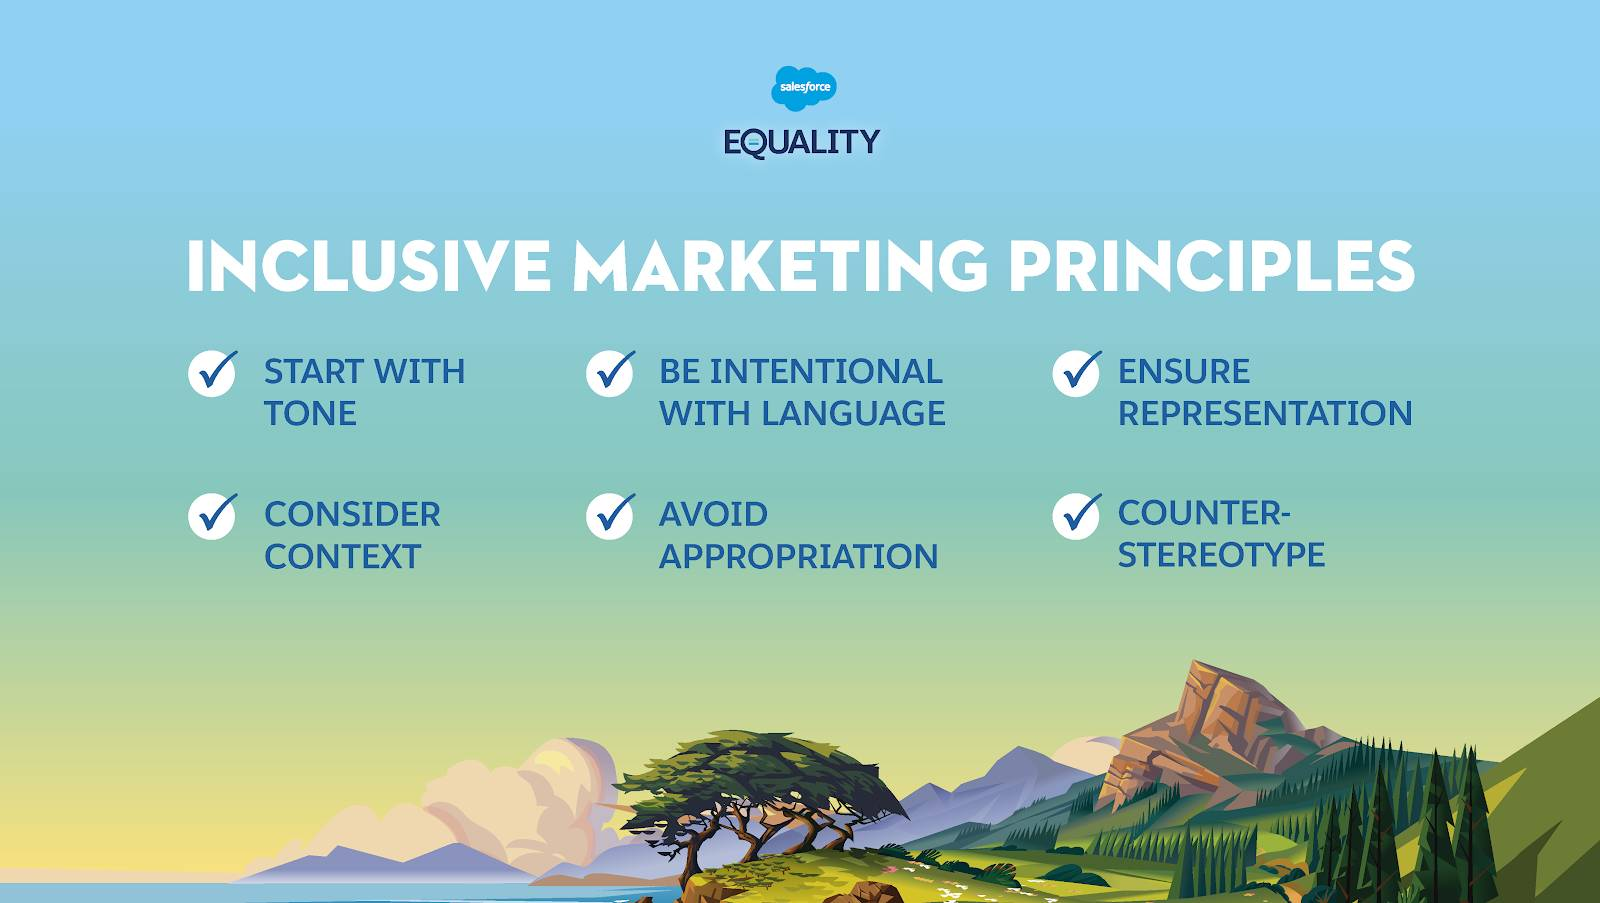 Chart showing the six principles of inclusive marketing which are listed below.